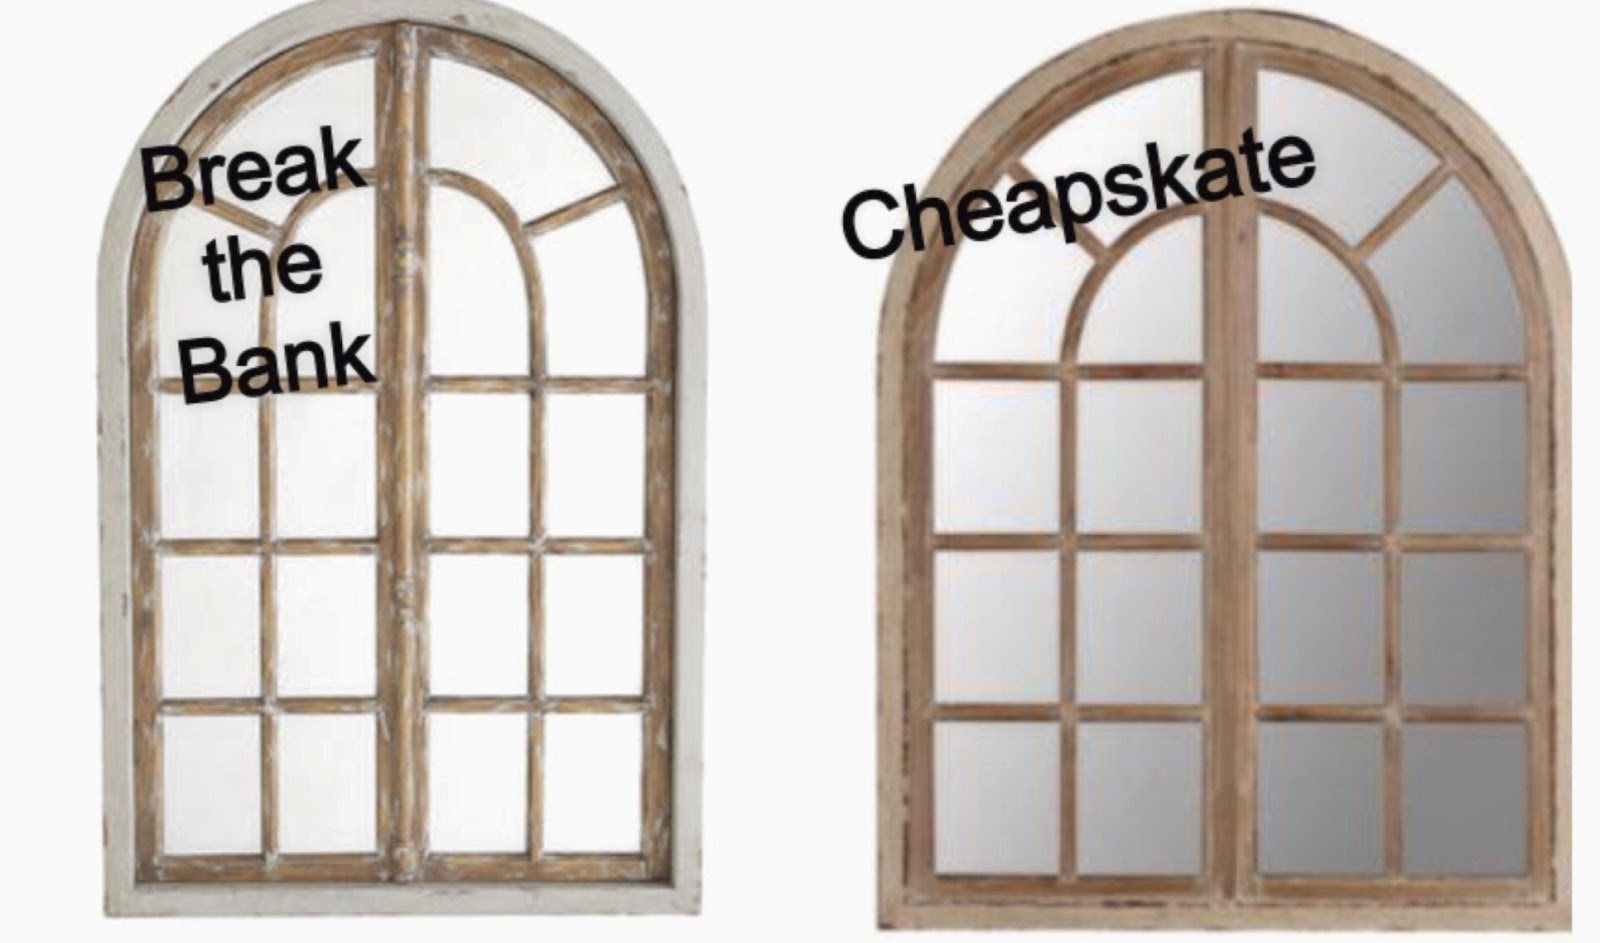 whimsy girl: Break the Bank vs. Cheapskate {Arch Window Frame Mirror}